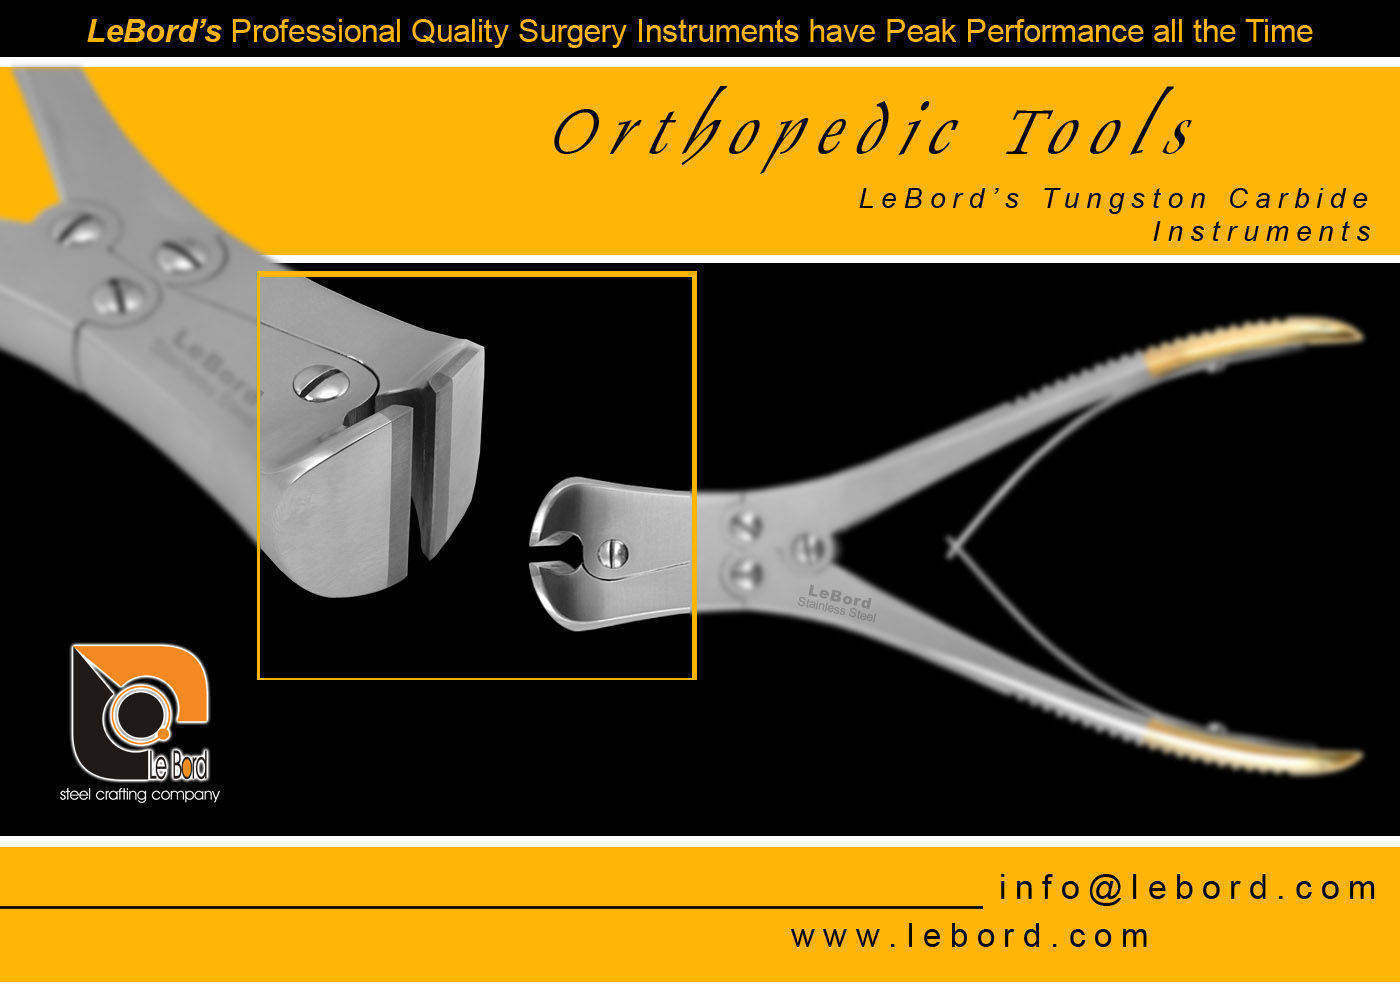 Surgical Orthopedic Instruments, Buy from Lebord (Surgical